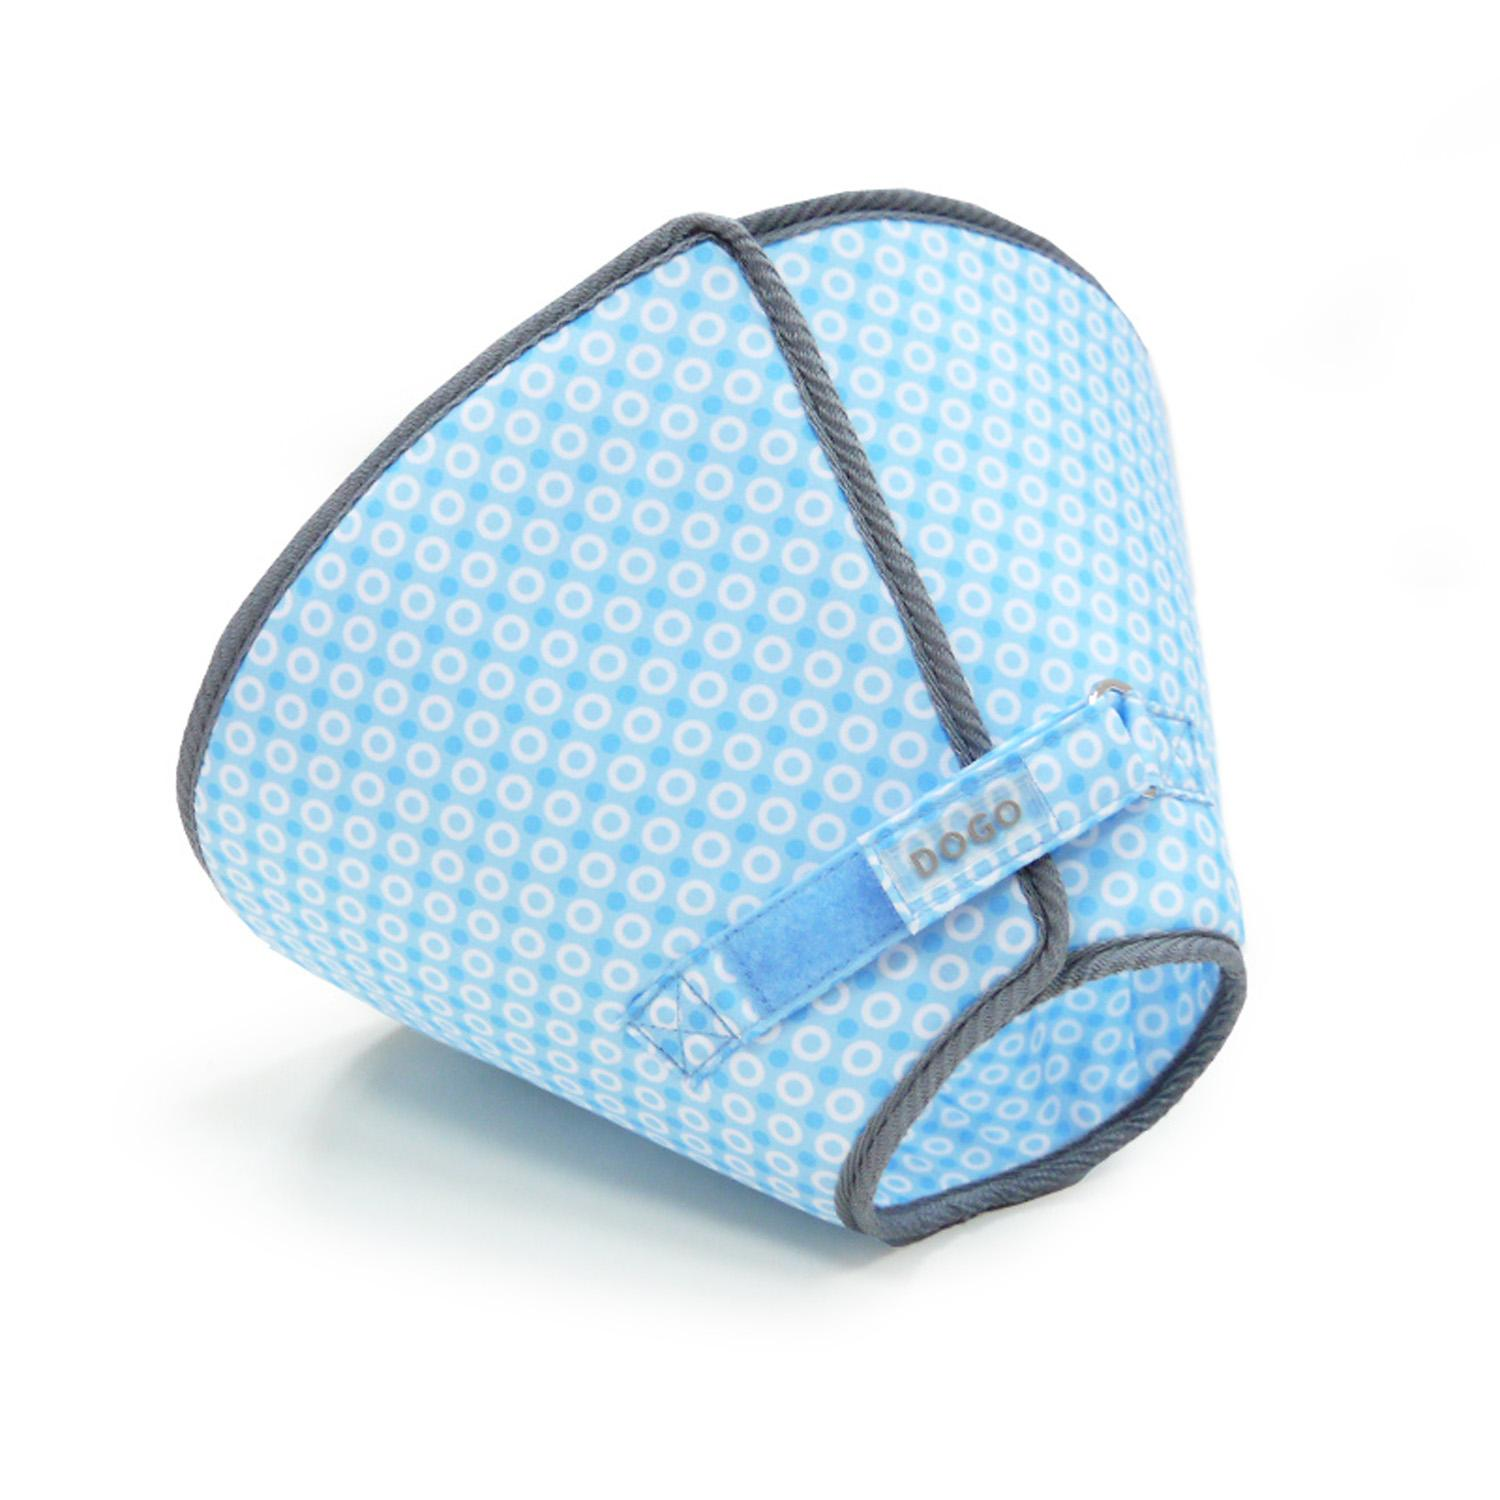 Get Better Soft Dog E-Collar by Dogo - Blue Dots